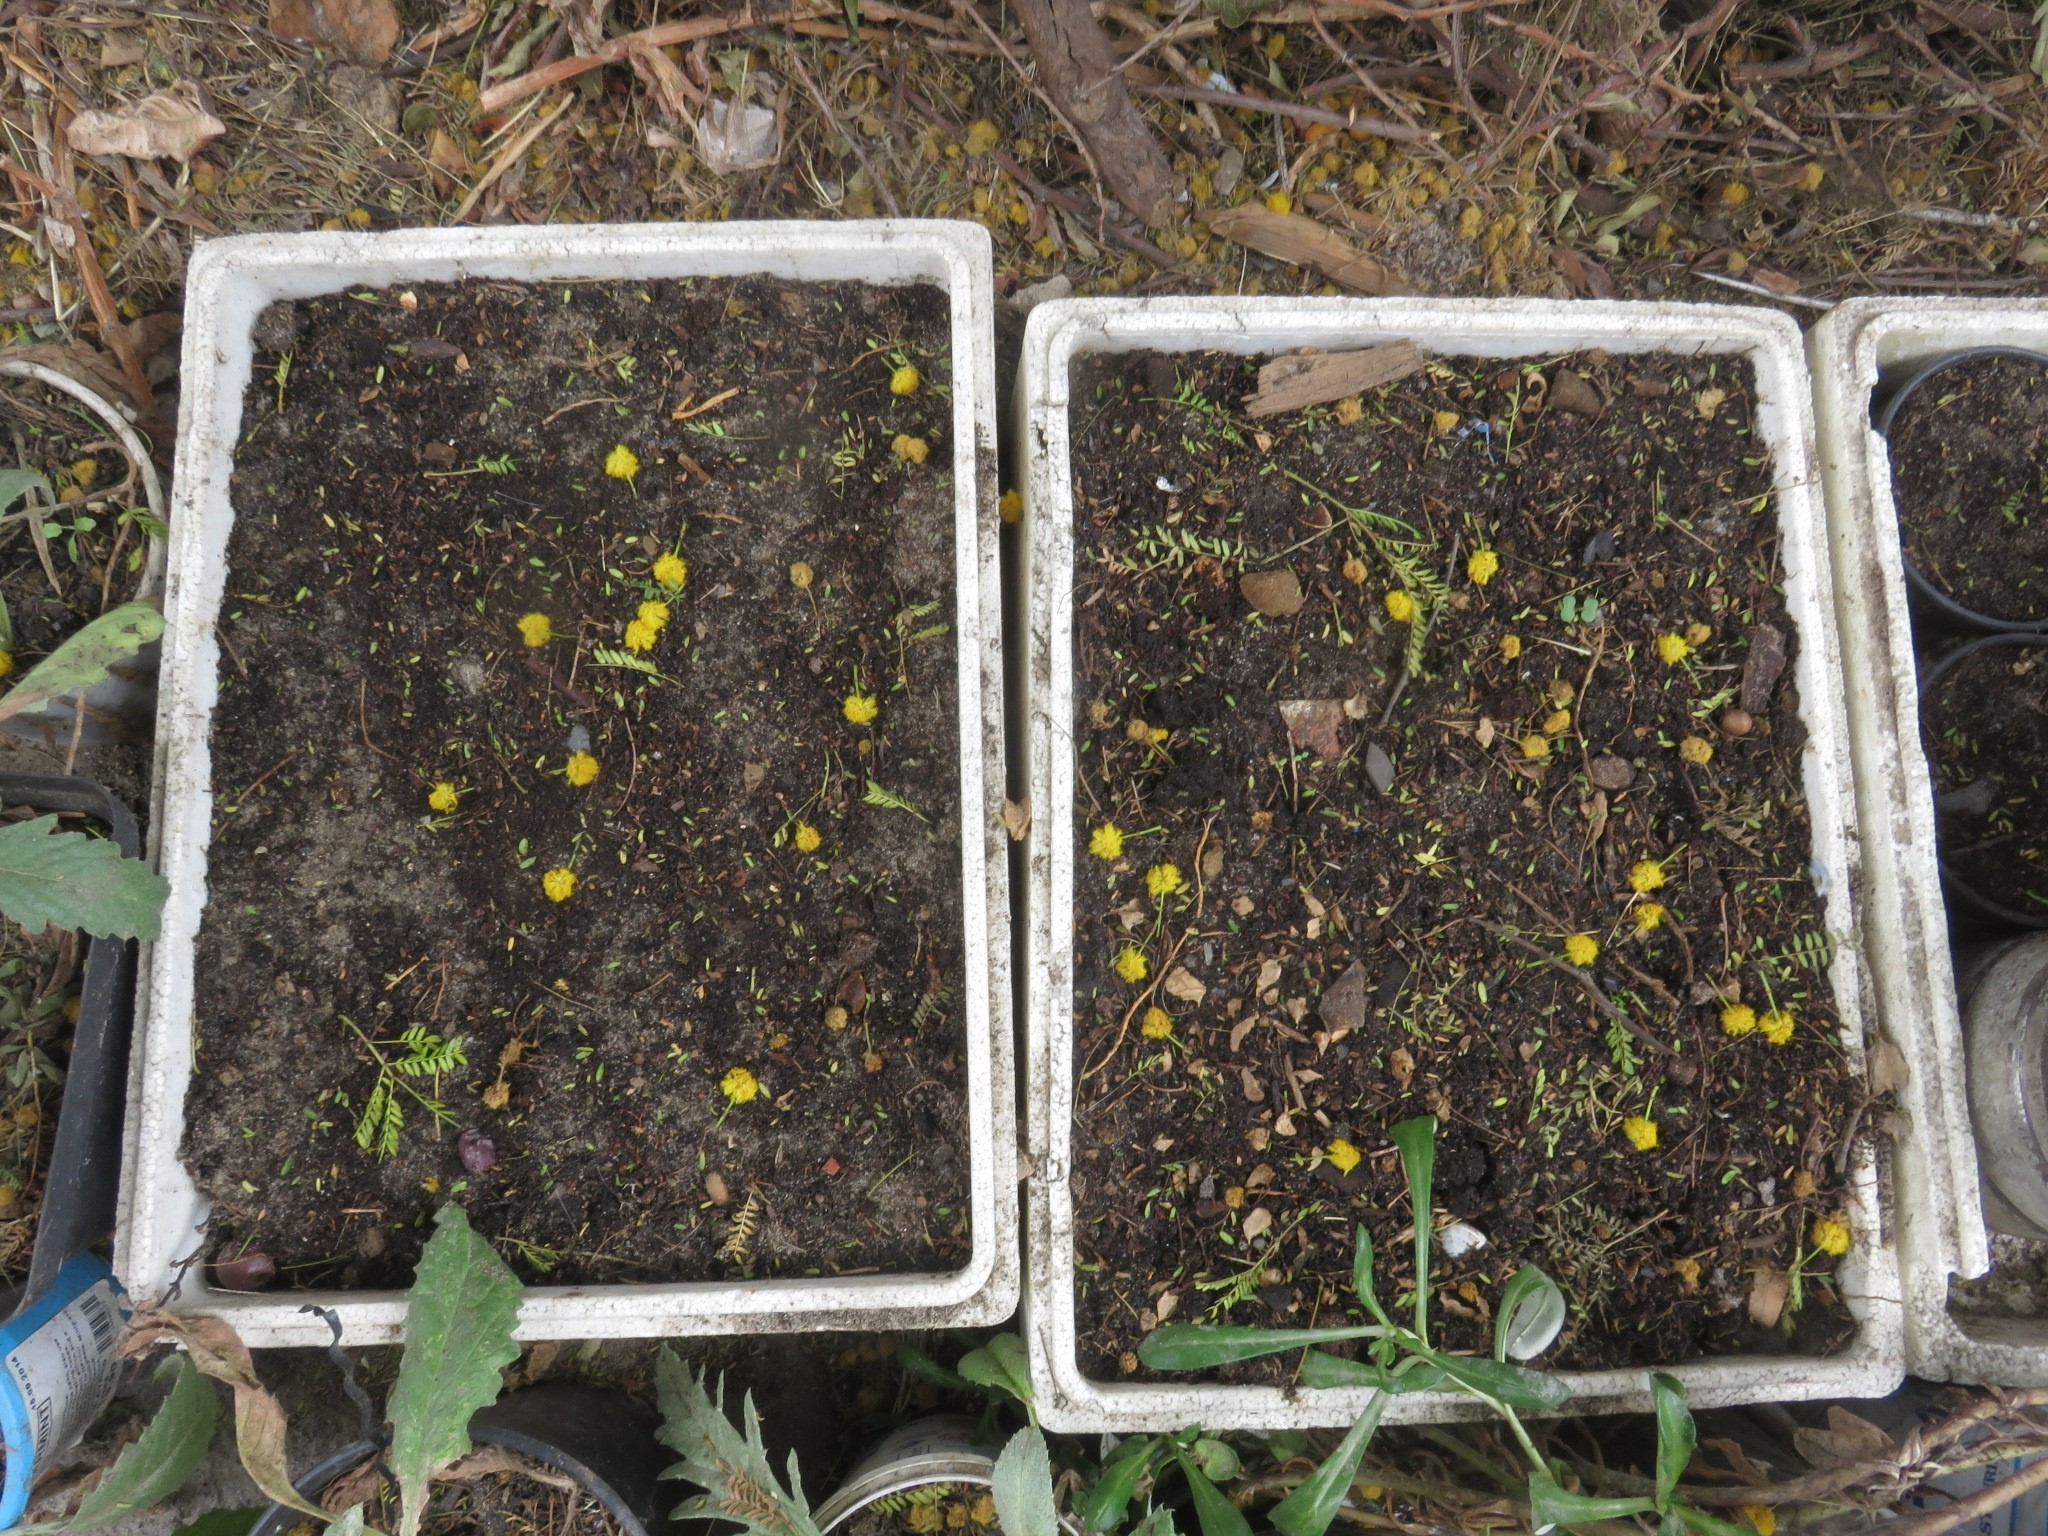 Recycled fish packaging. 40 x 30 x 12 cm polystyrene boxes are good for vegetable and some tree seed, and cuttings. The yellow balls are Acacia karoo flowers.